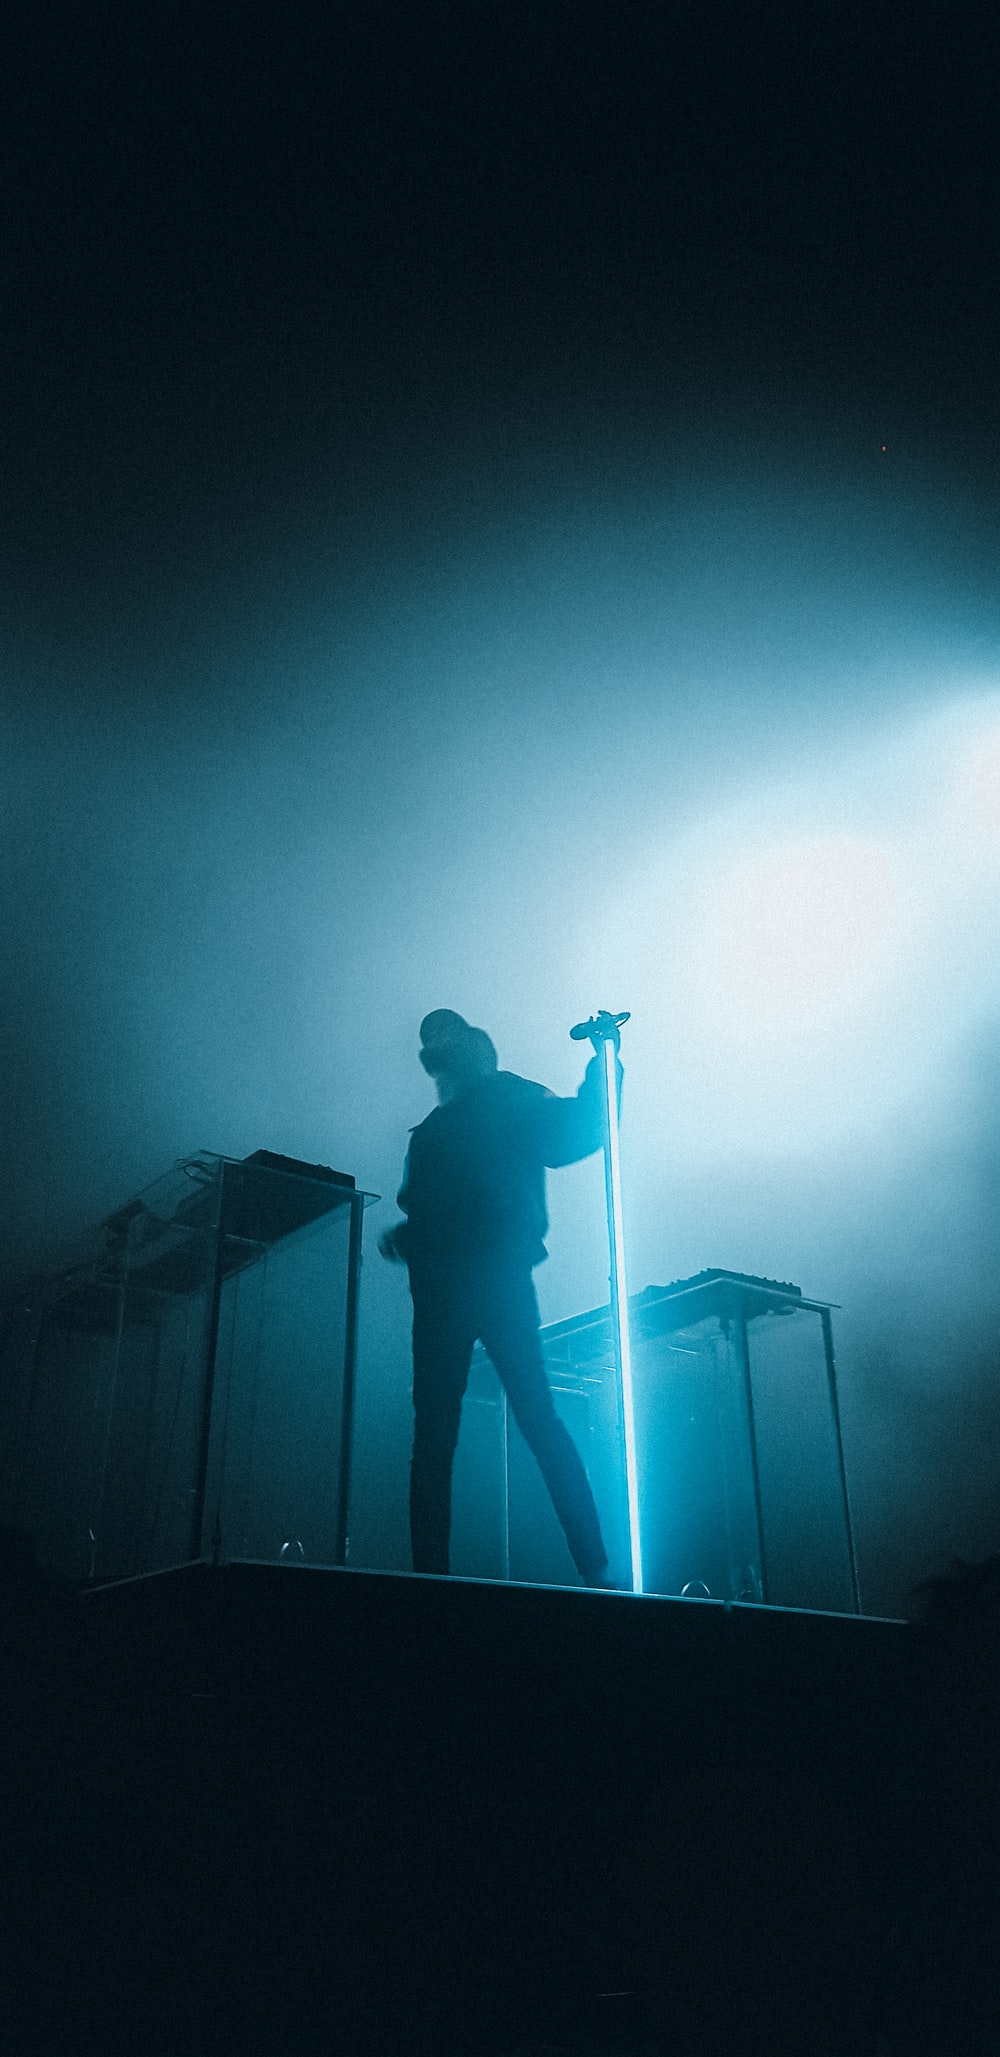 man in black jacket standing on stage